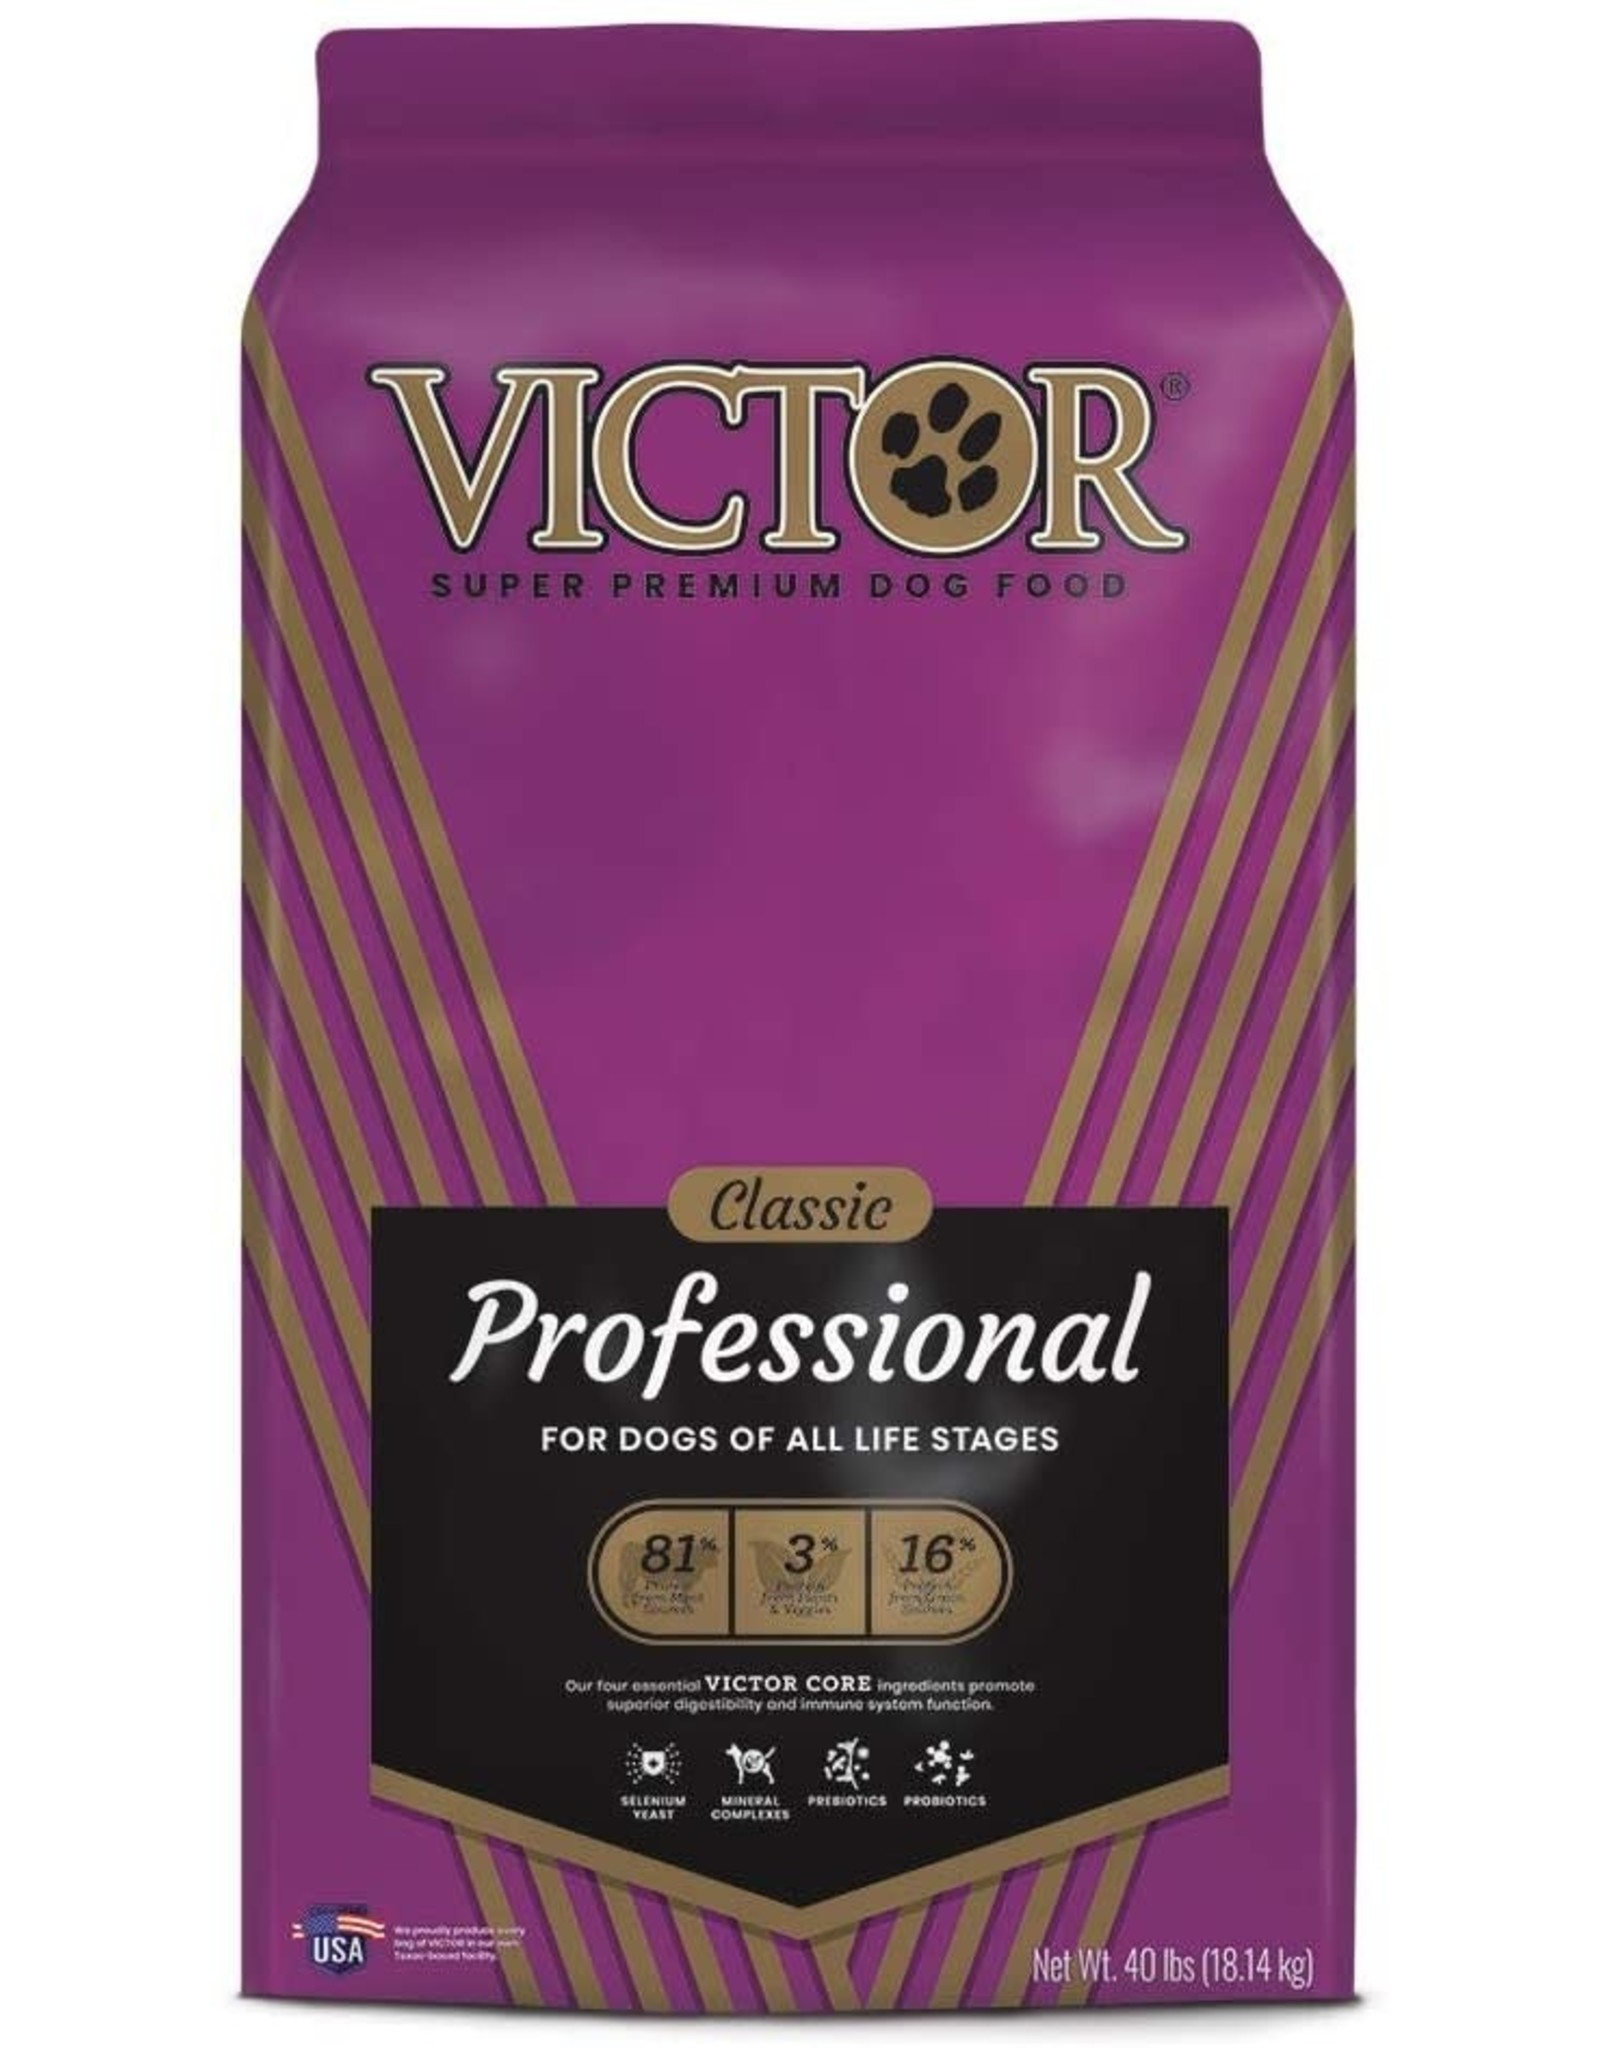 Victor Professional 40# Dog Food